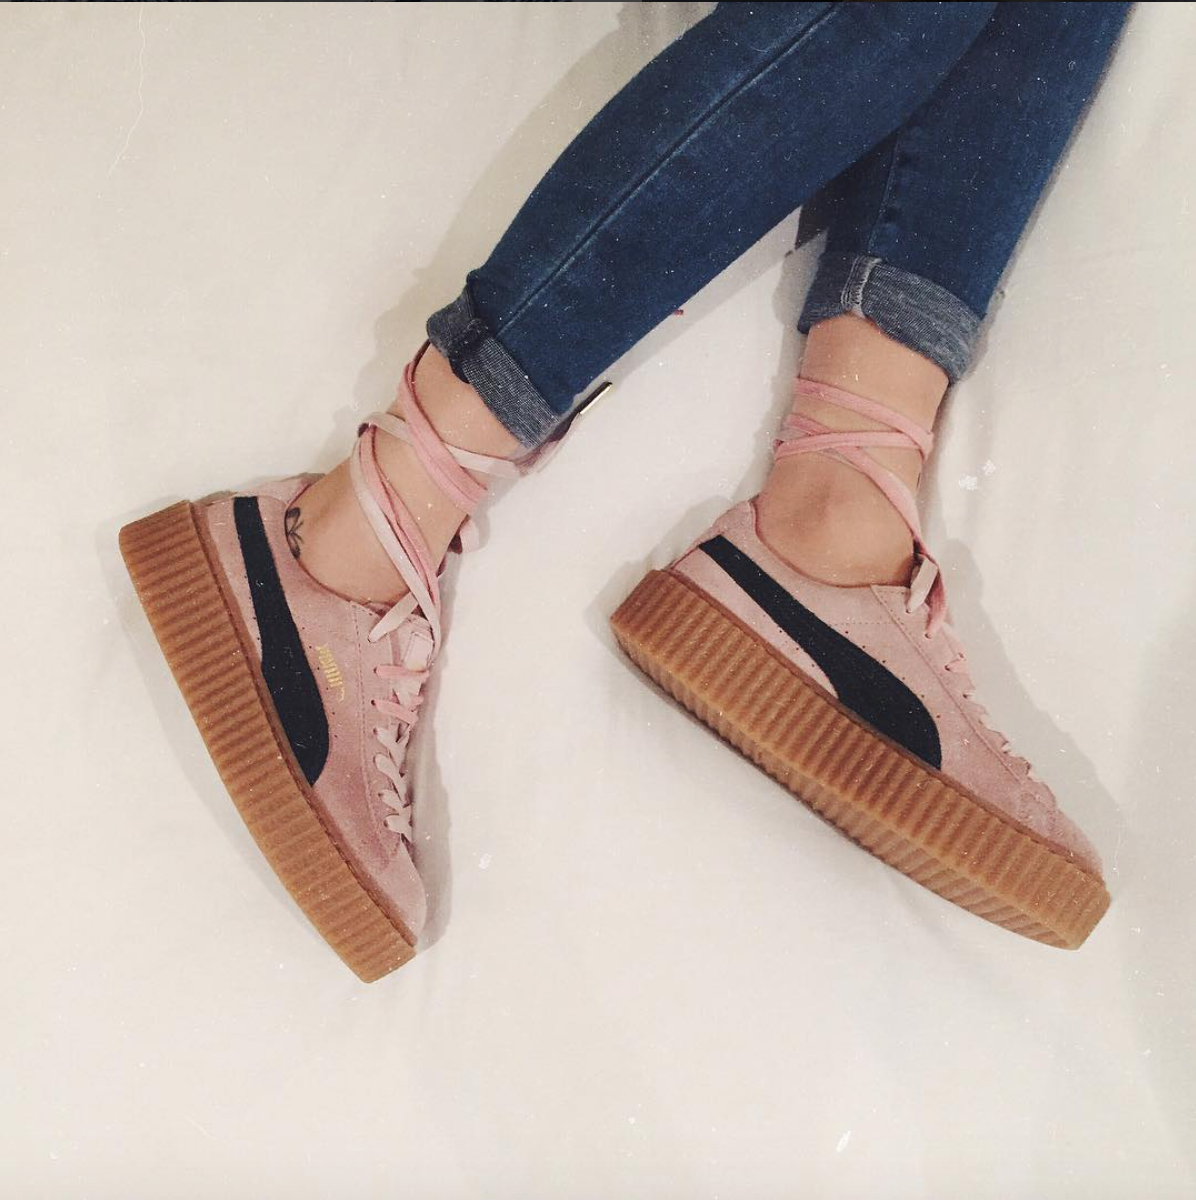 drawingnk Puma Sneakers, Shoes Sneakers, Creeper Sneakers, Creeper Shoes,  Looks Com 6c8da804538